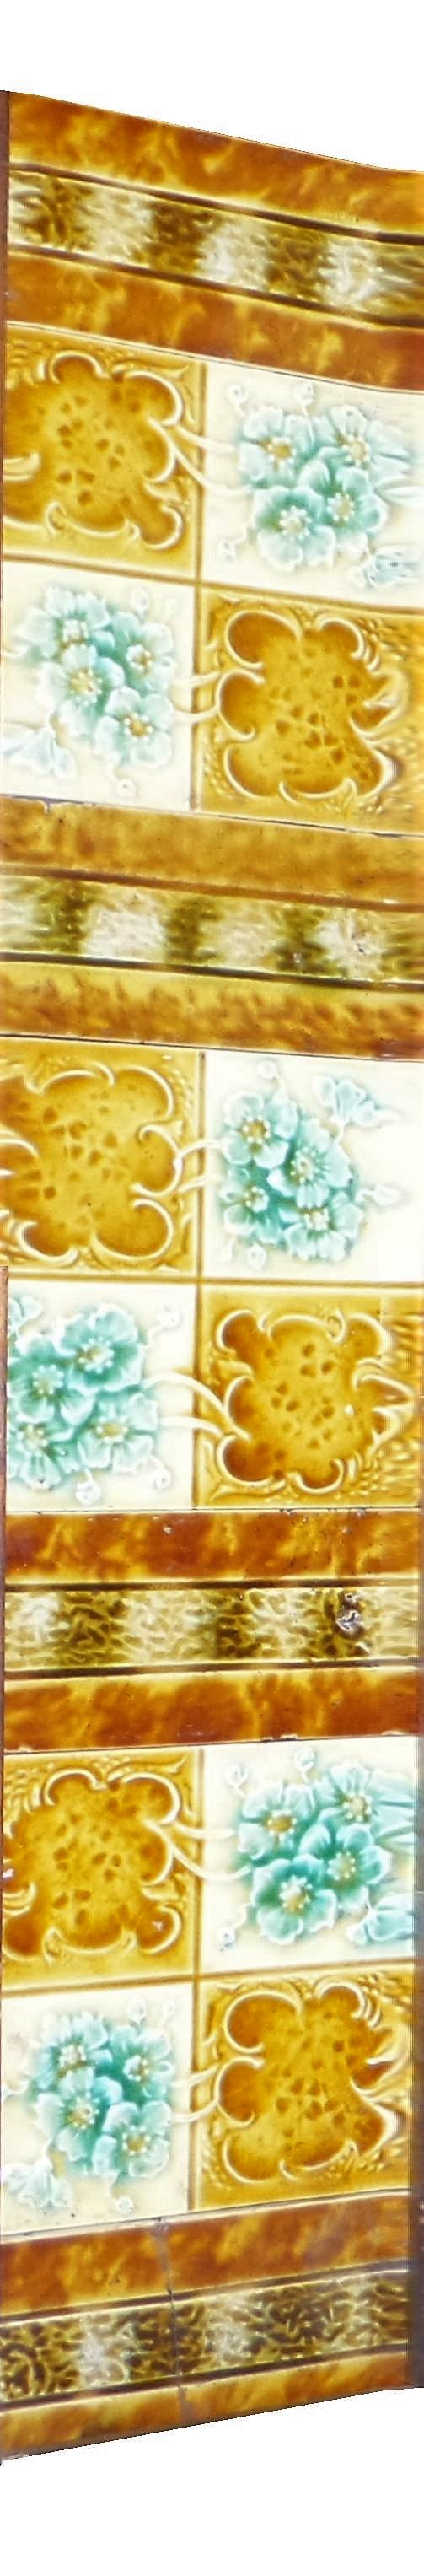 antique fireplace tiles set